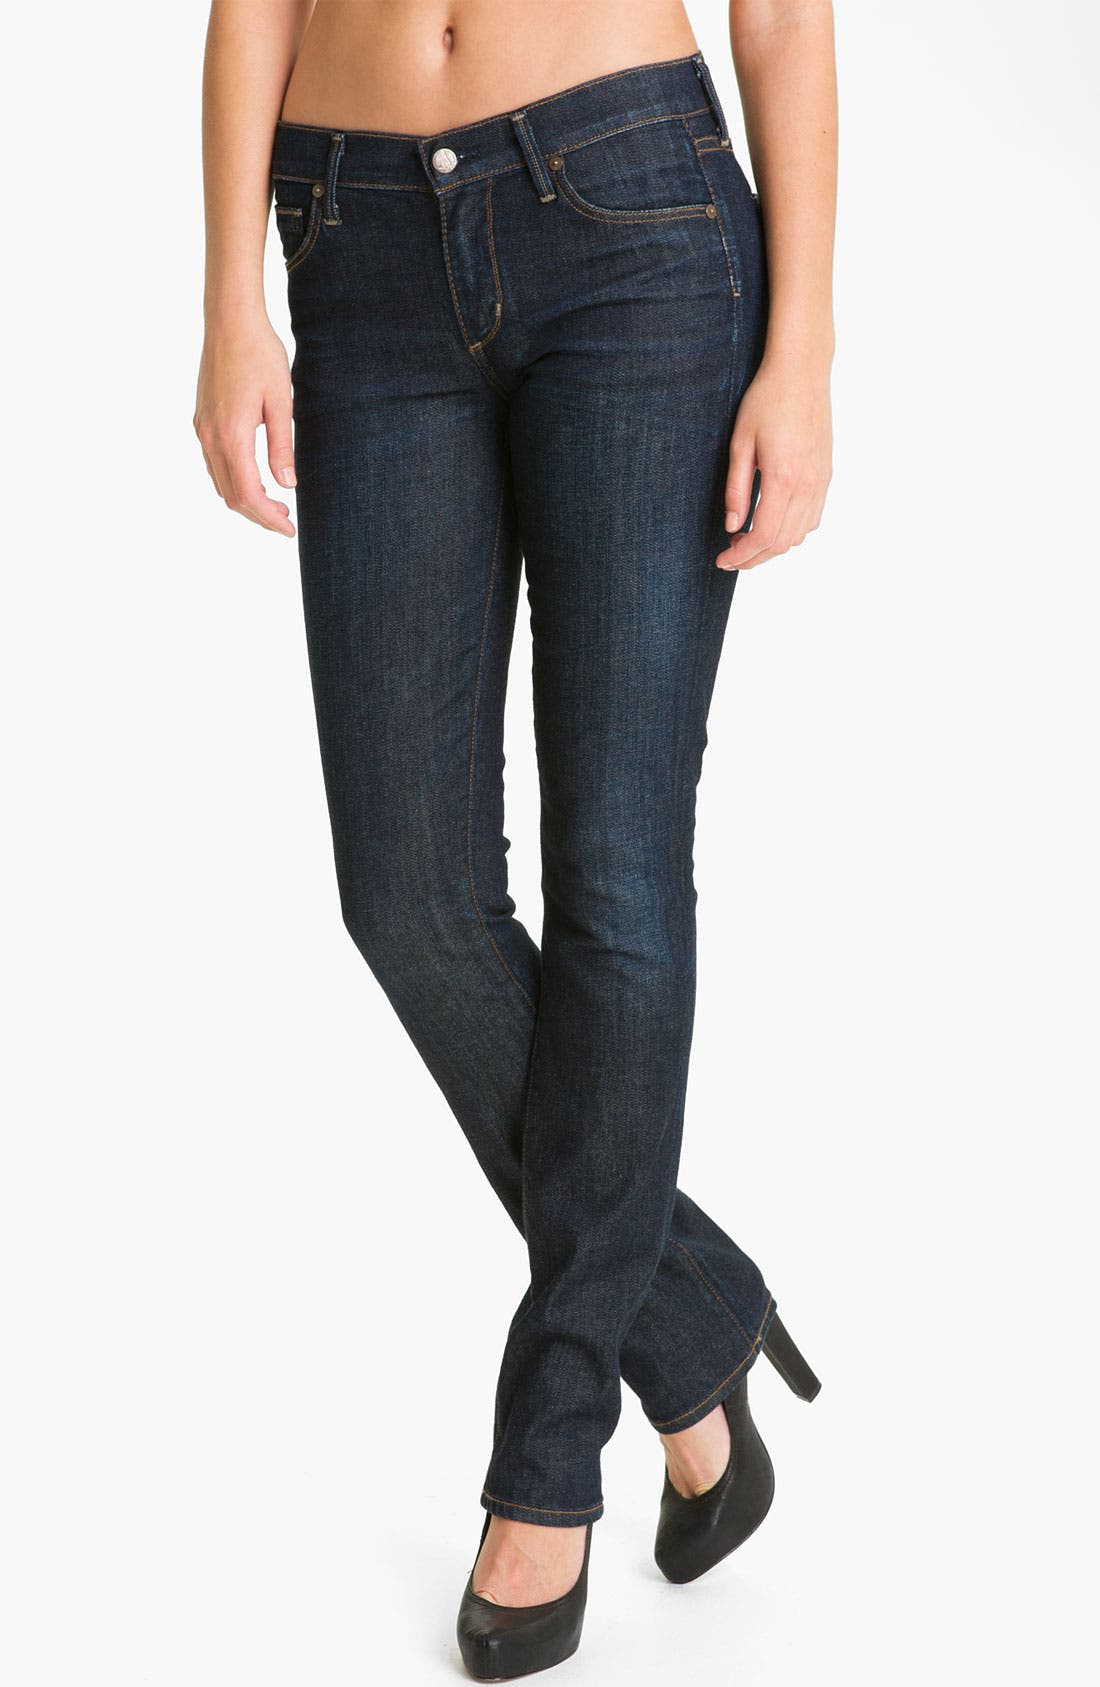 Alternate Image 1 Selected - Citizens of Humanity 'Elson' Straight Leg Jeans (Glory)